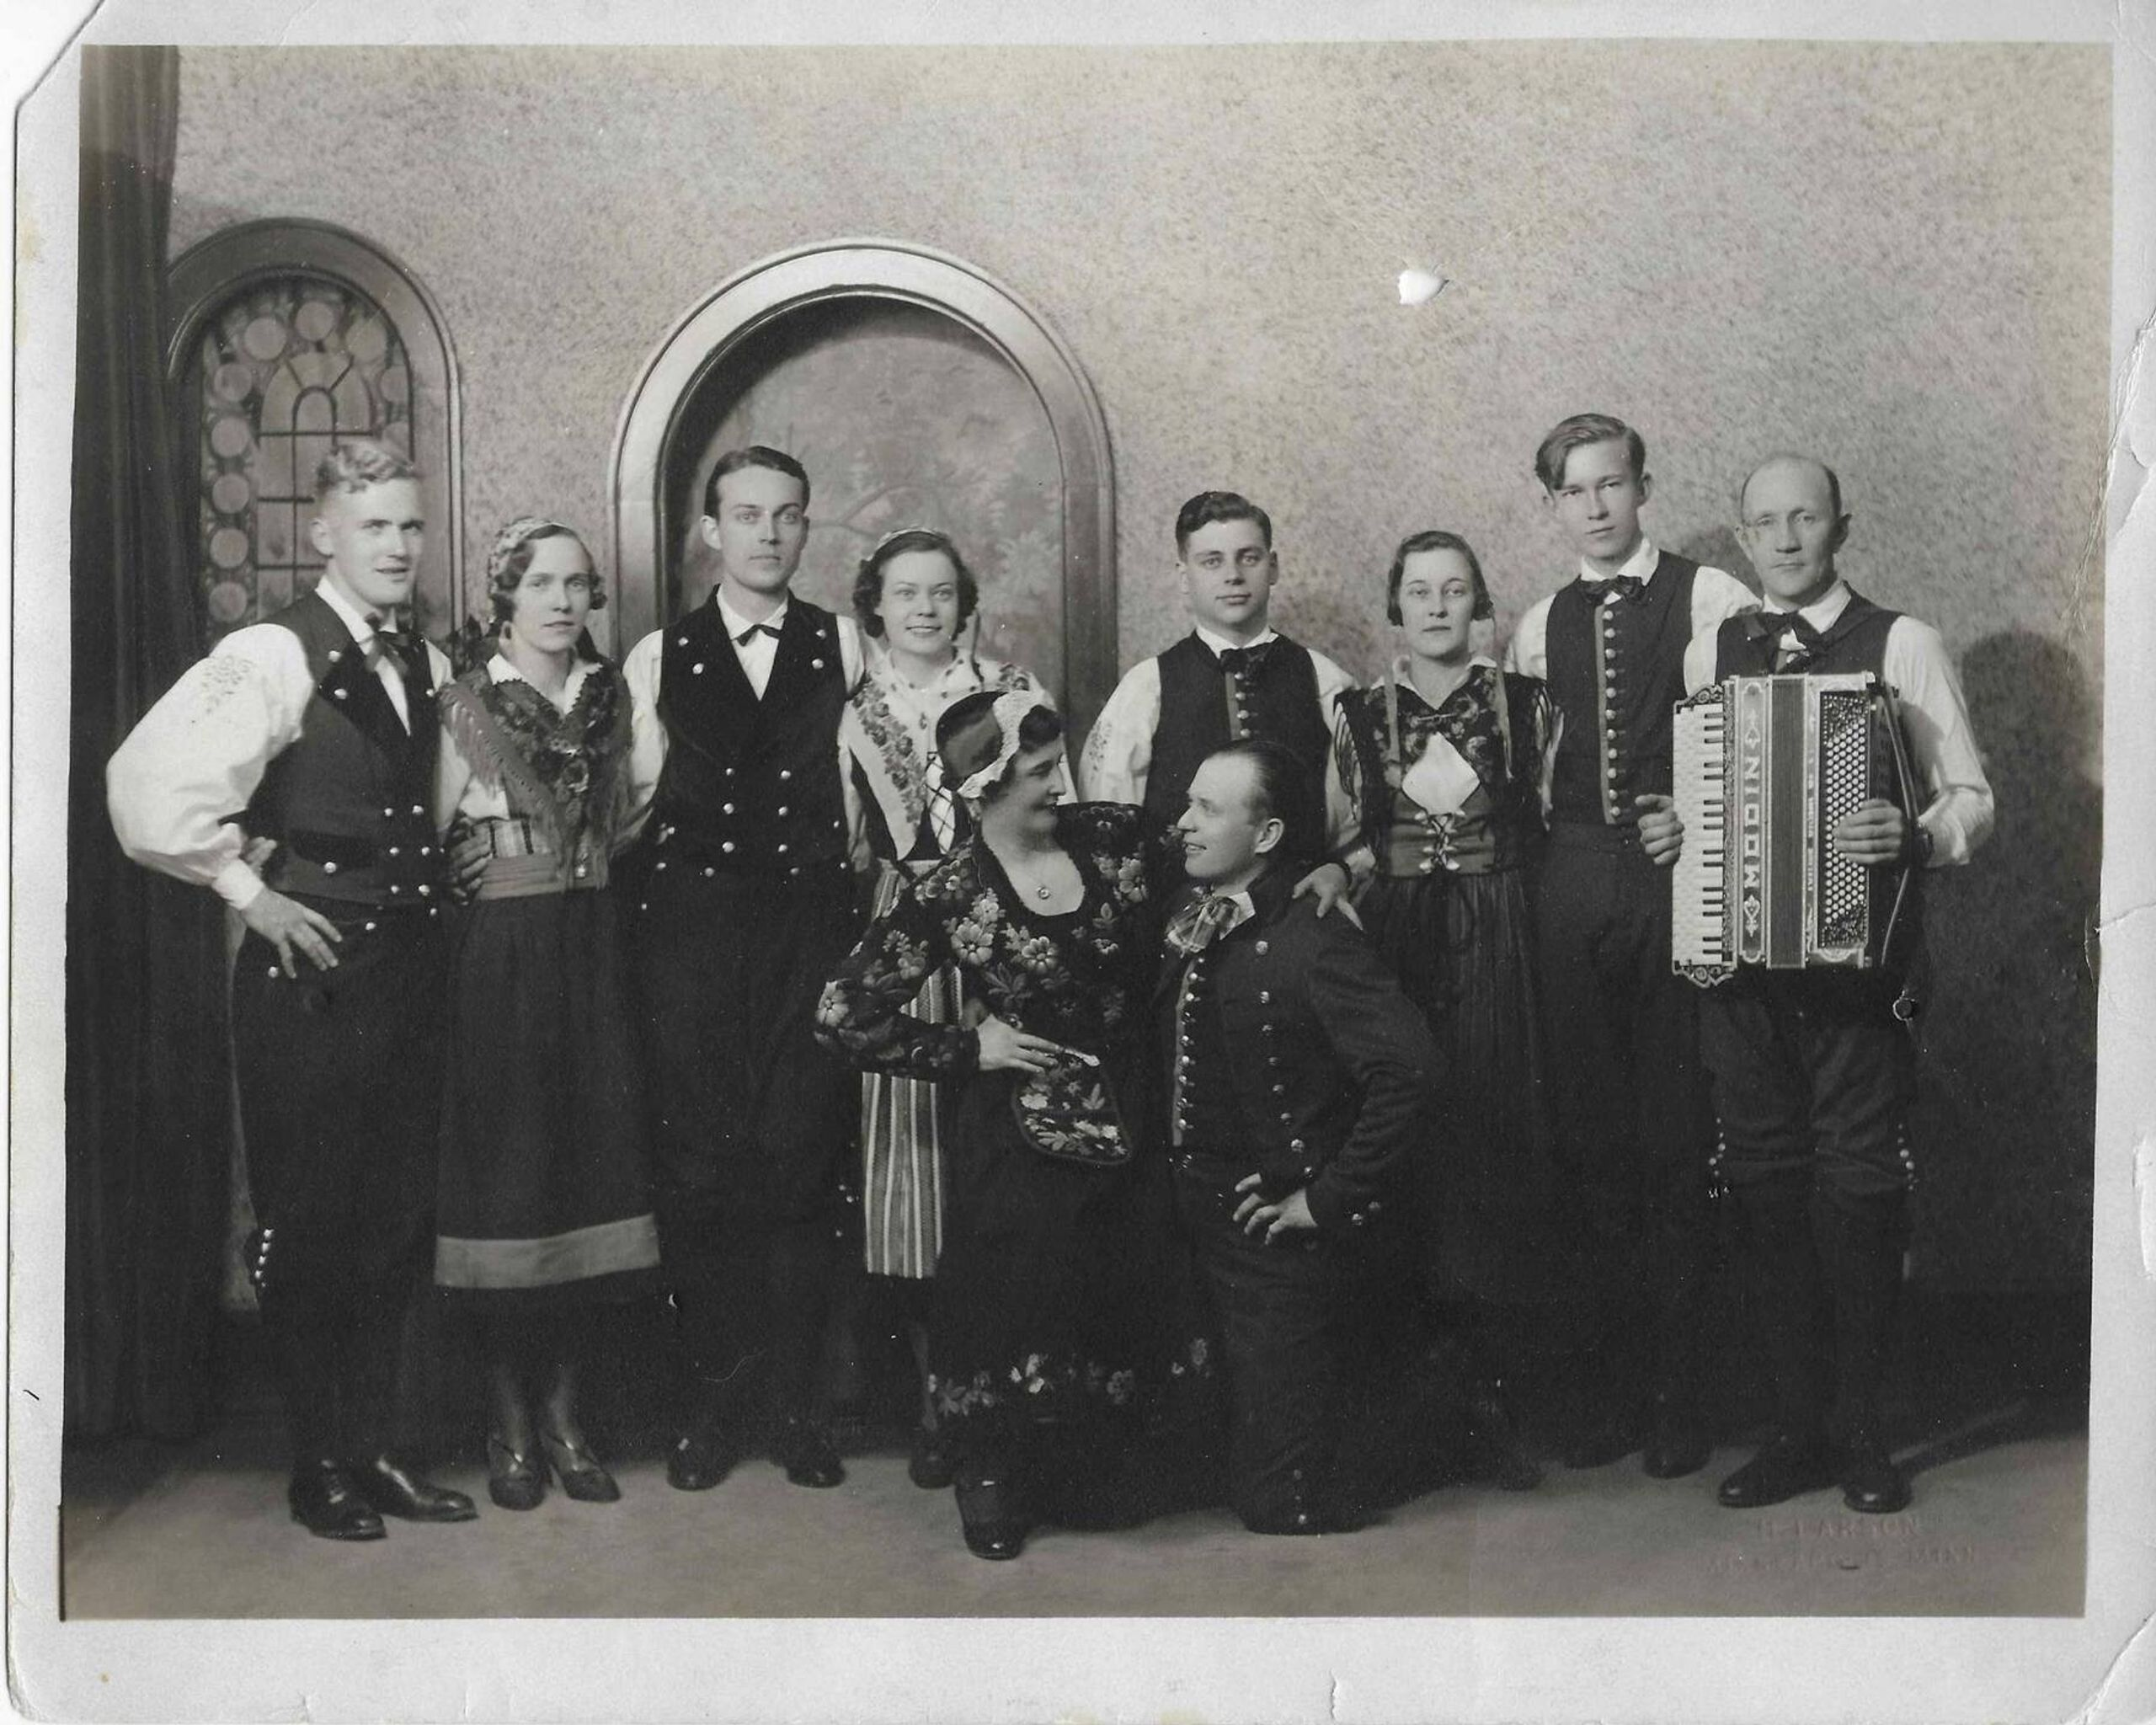 Group of performers standing in formal clothing and holding instruments